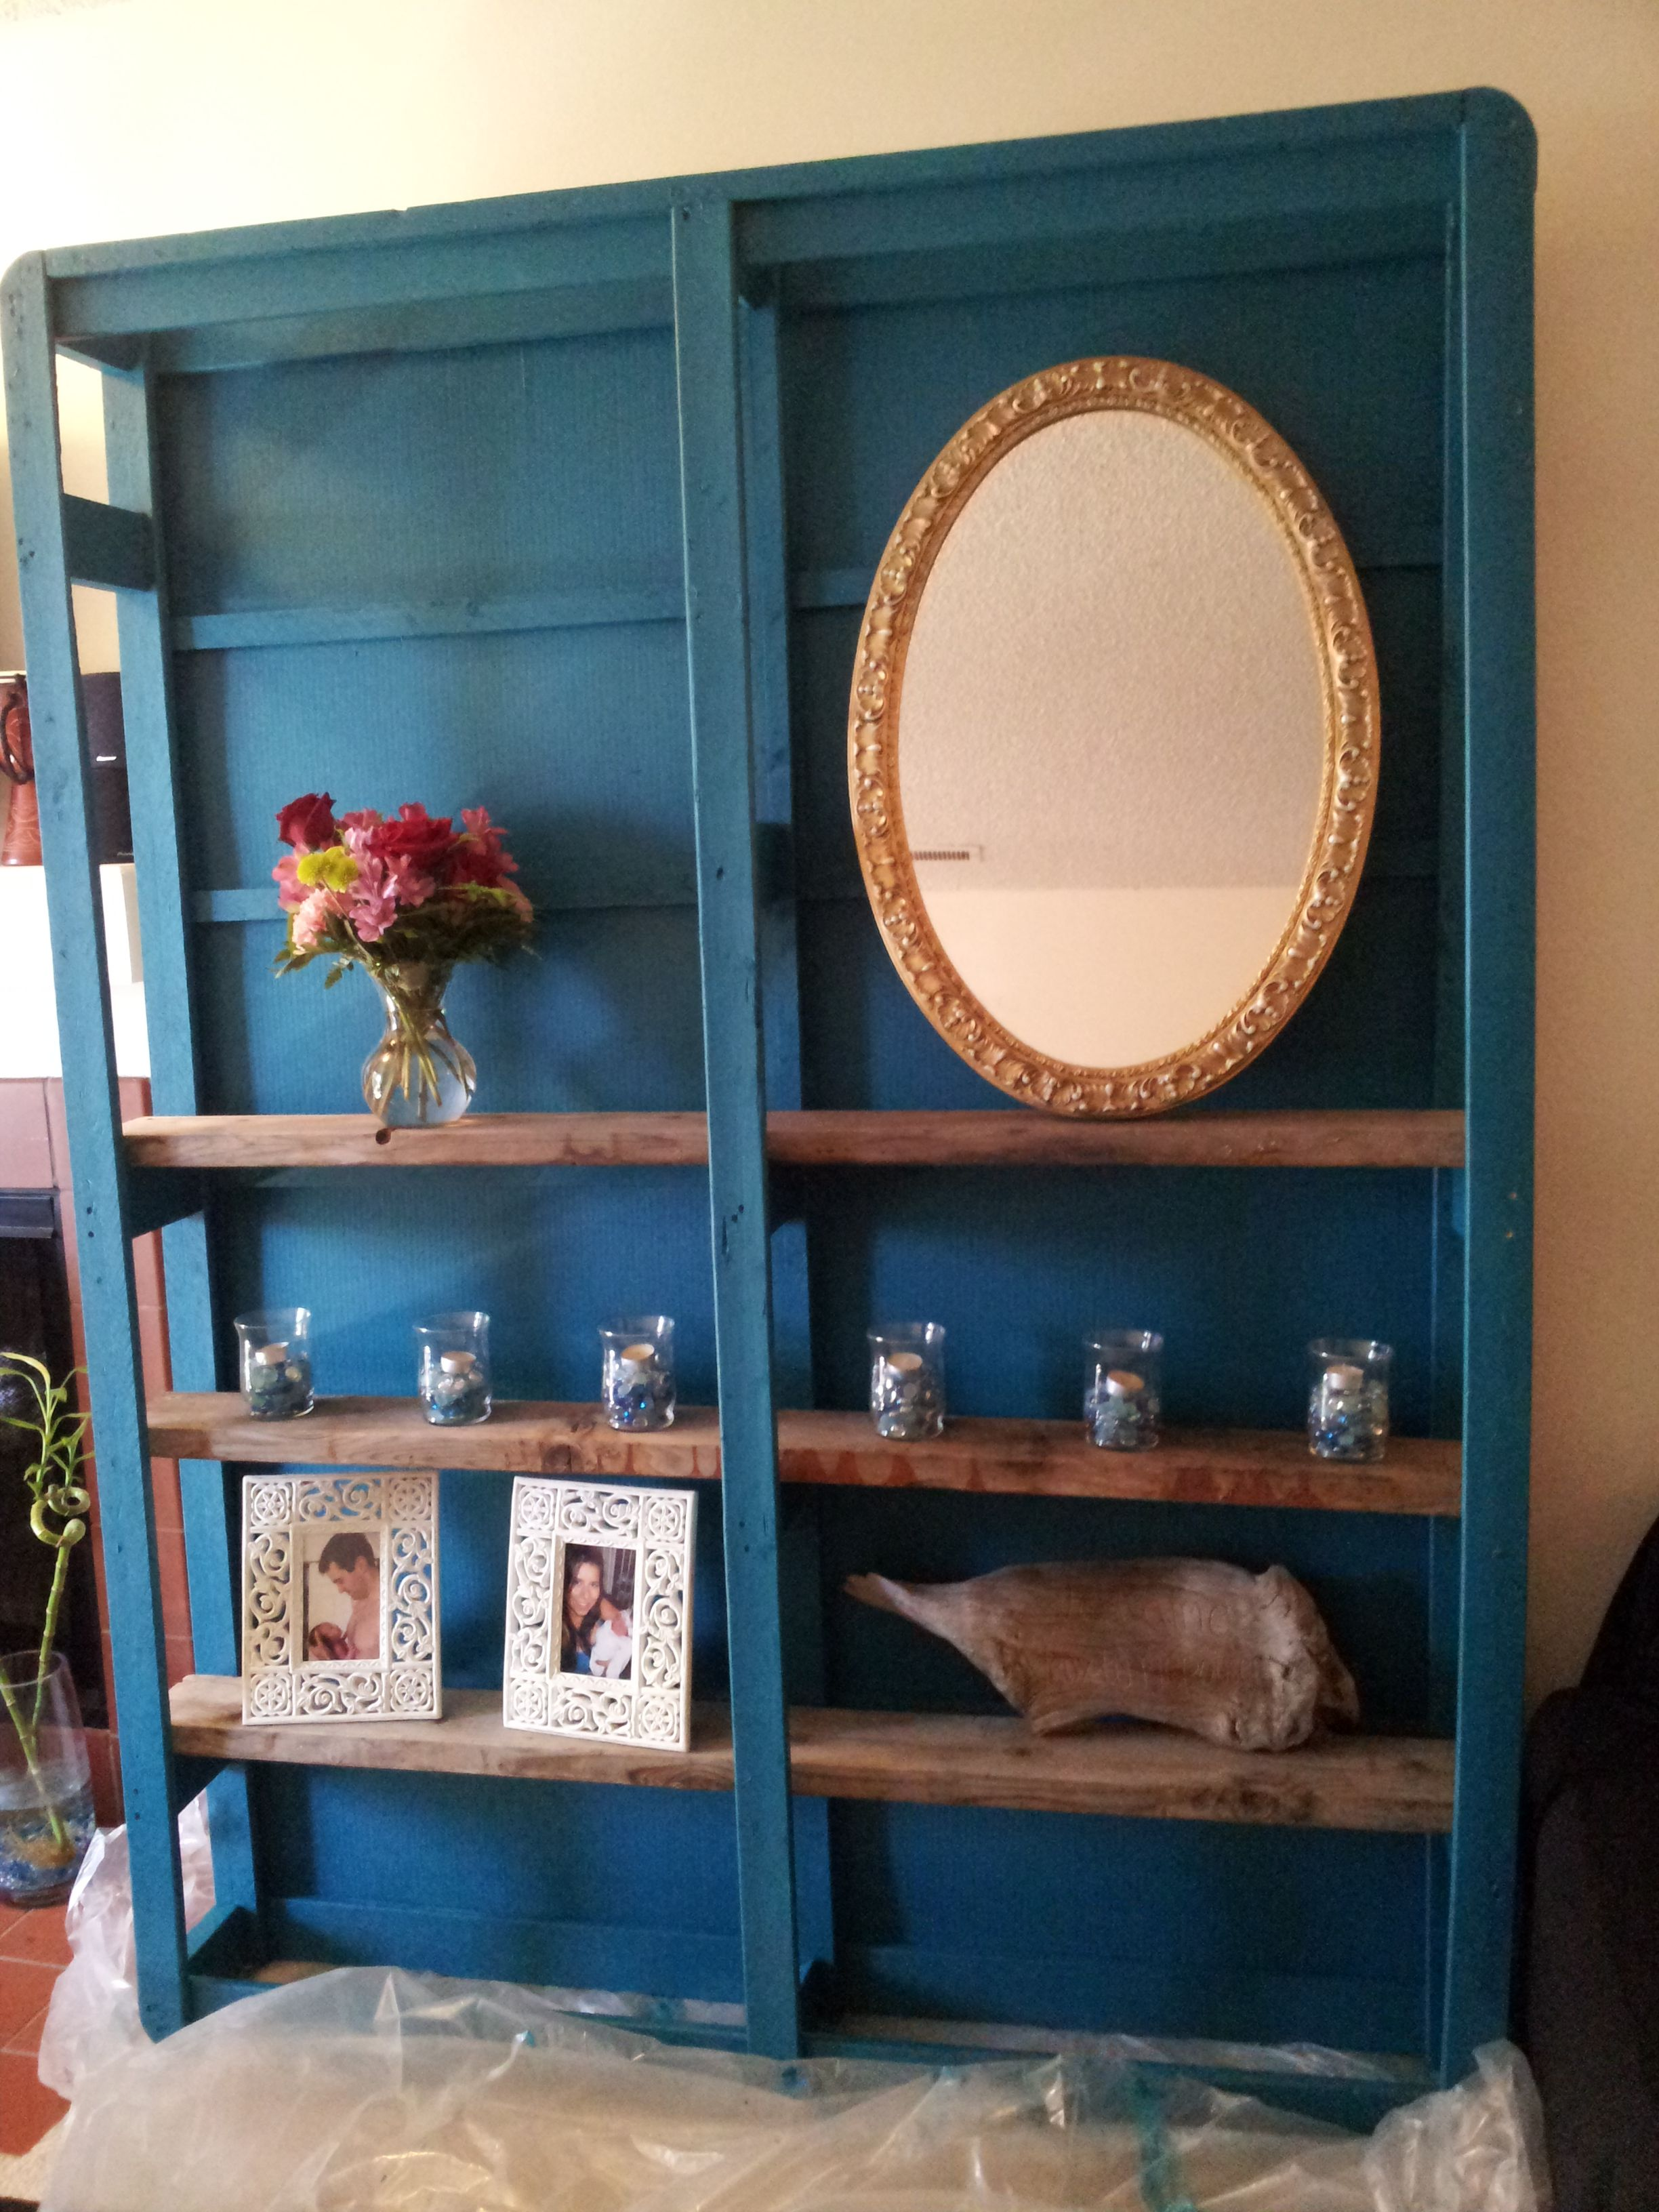 this shelving unit was made from the box spring of an old bed they